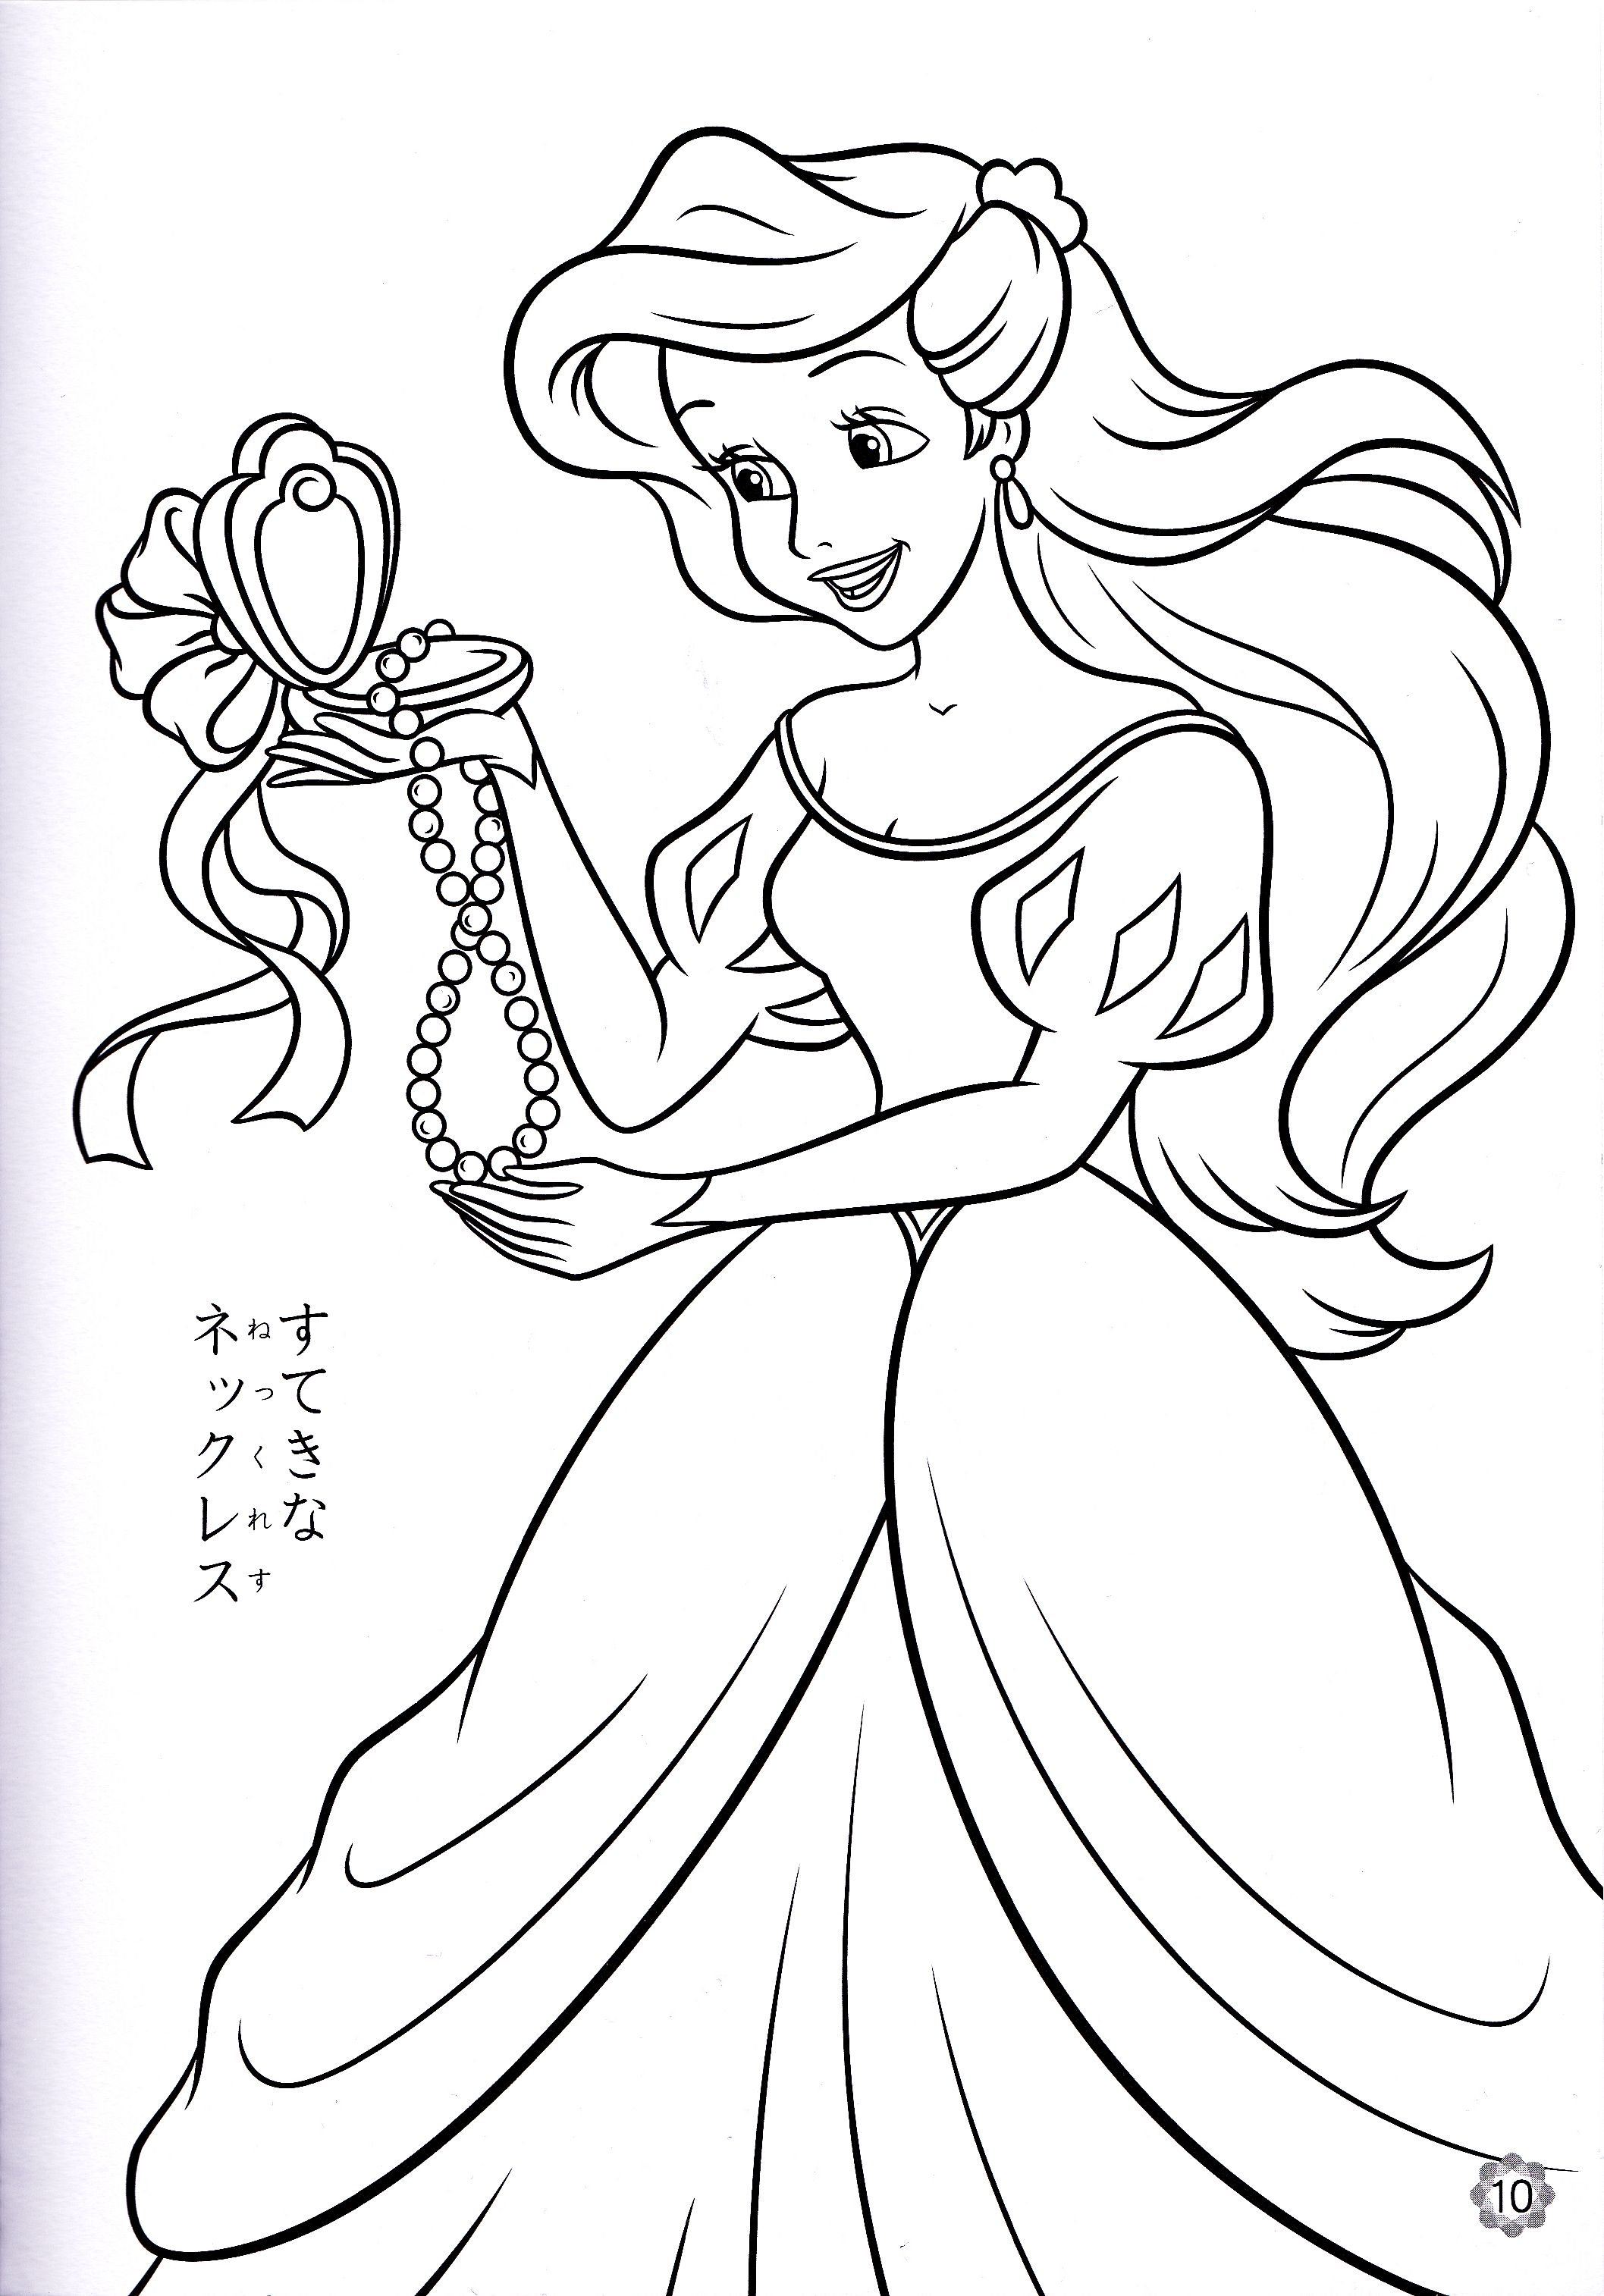 Princess Ariel Coloring Pages To Print Awesome Coloring